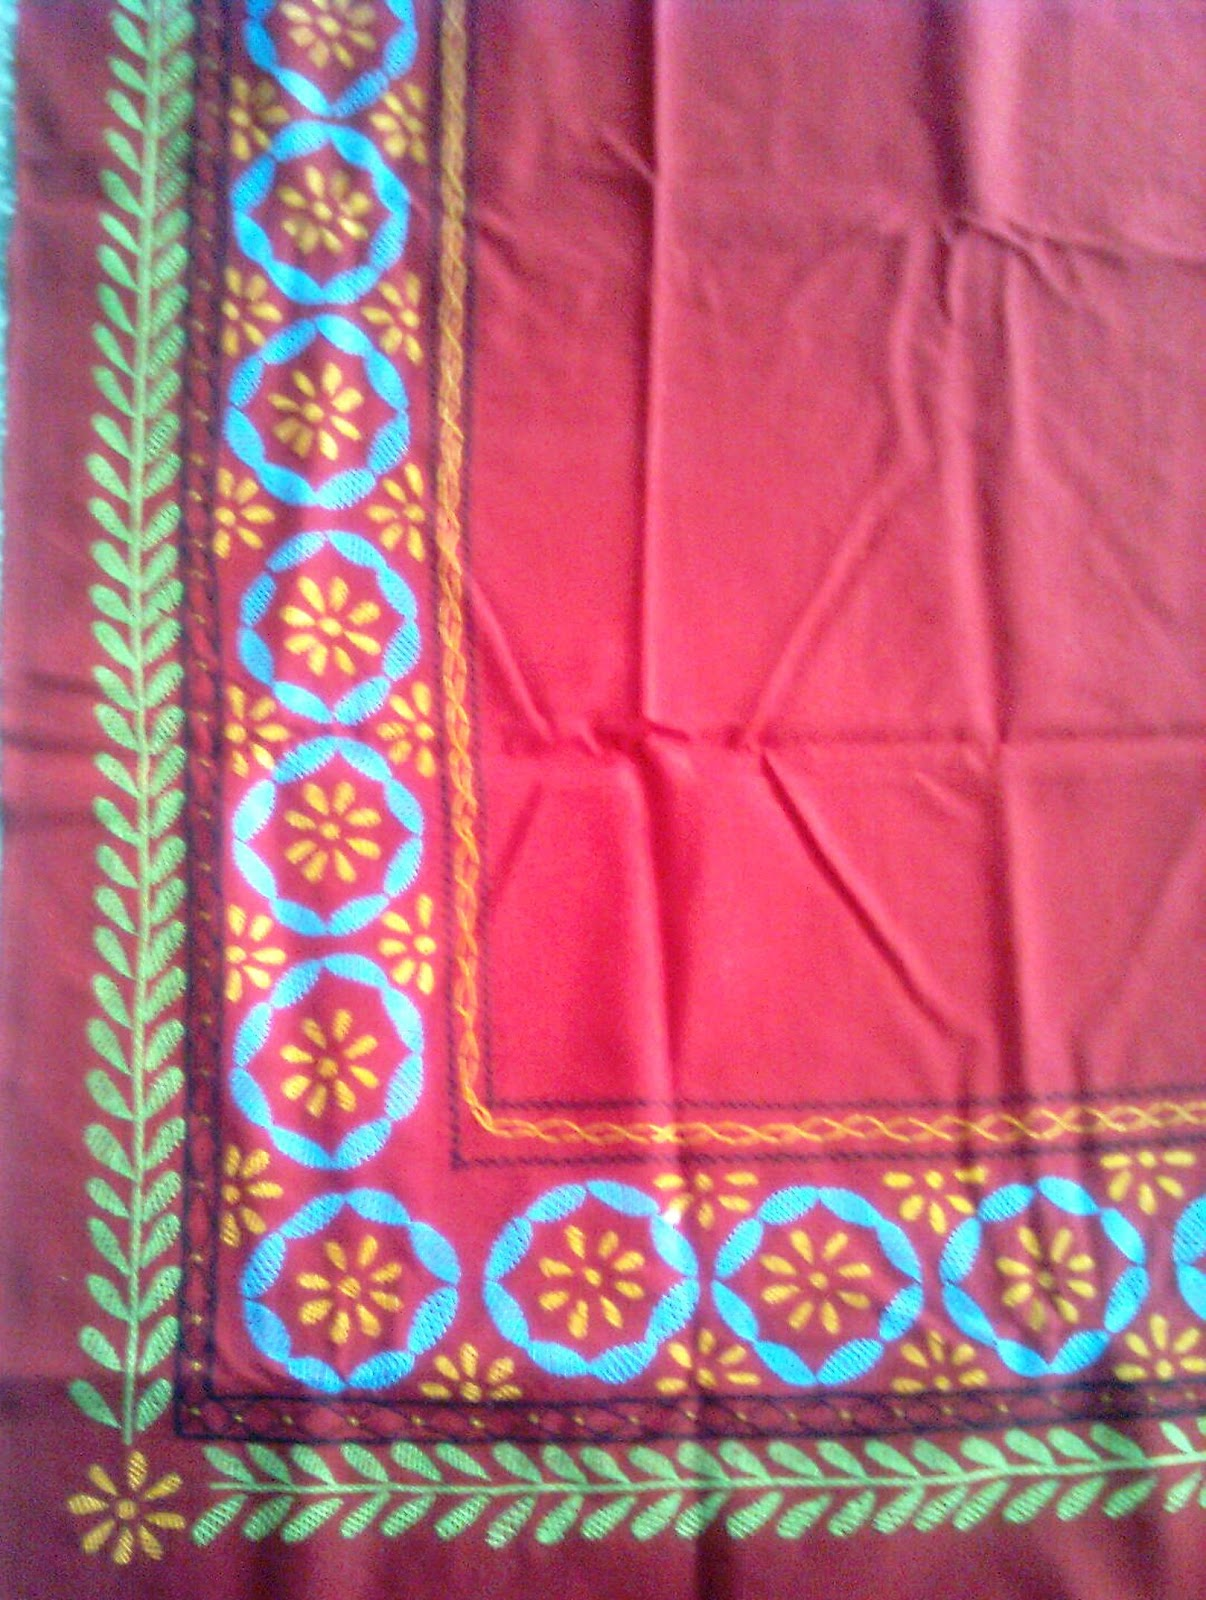 Creative patterns hand embroidery on bed sheet for Bed sheet design images